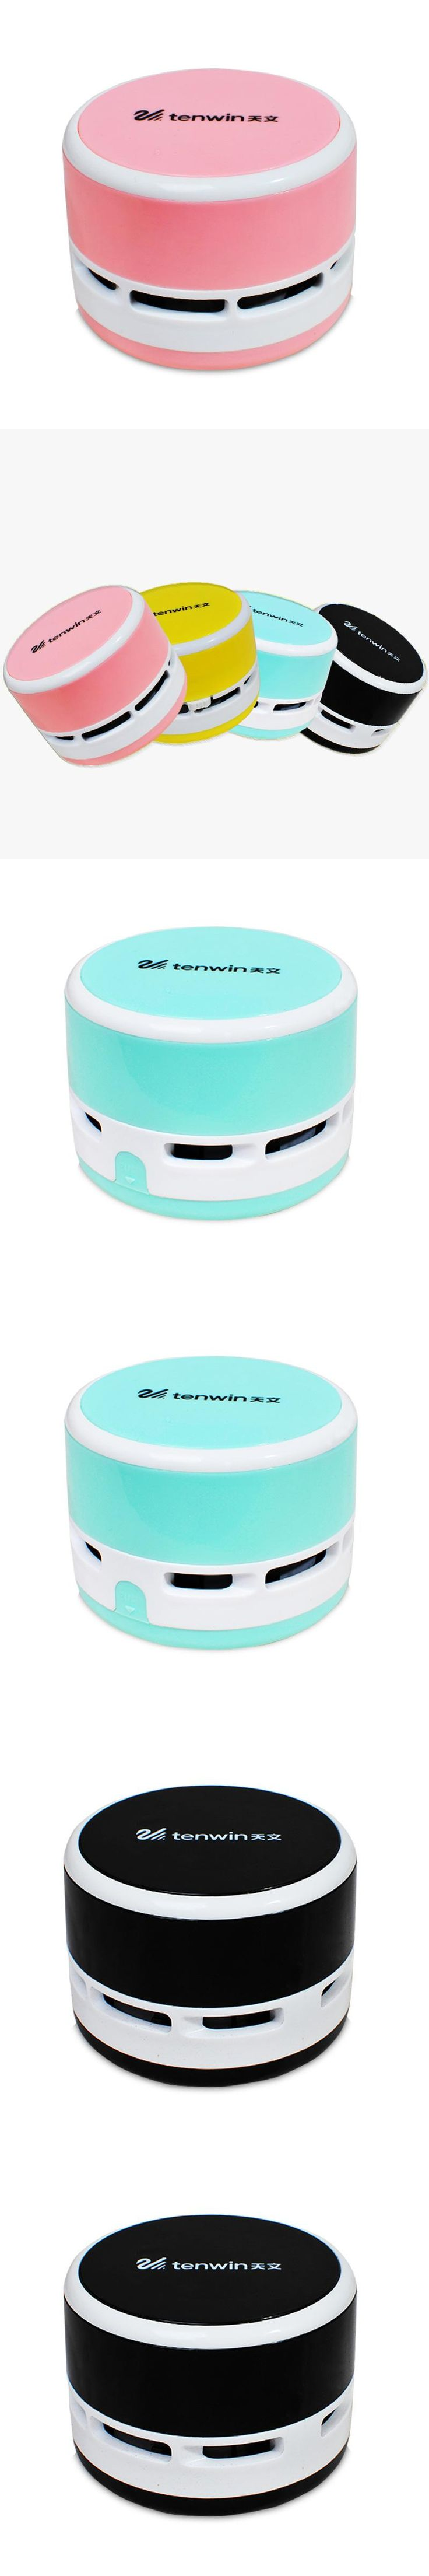 2017 New Cute Mini Vacuum Cleaner Desk Table Dust Keyboard Dust Vacuum Cleaner Sweeper Small Vacuum Hand Held Sweeper For Home